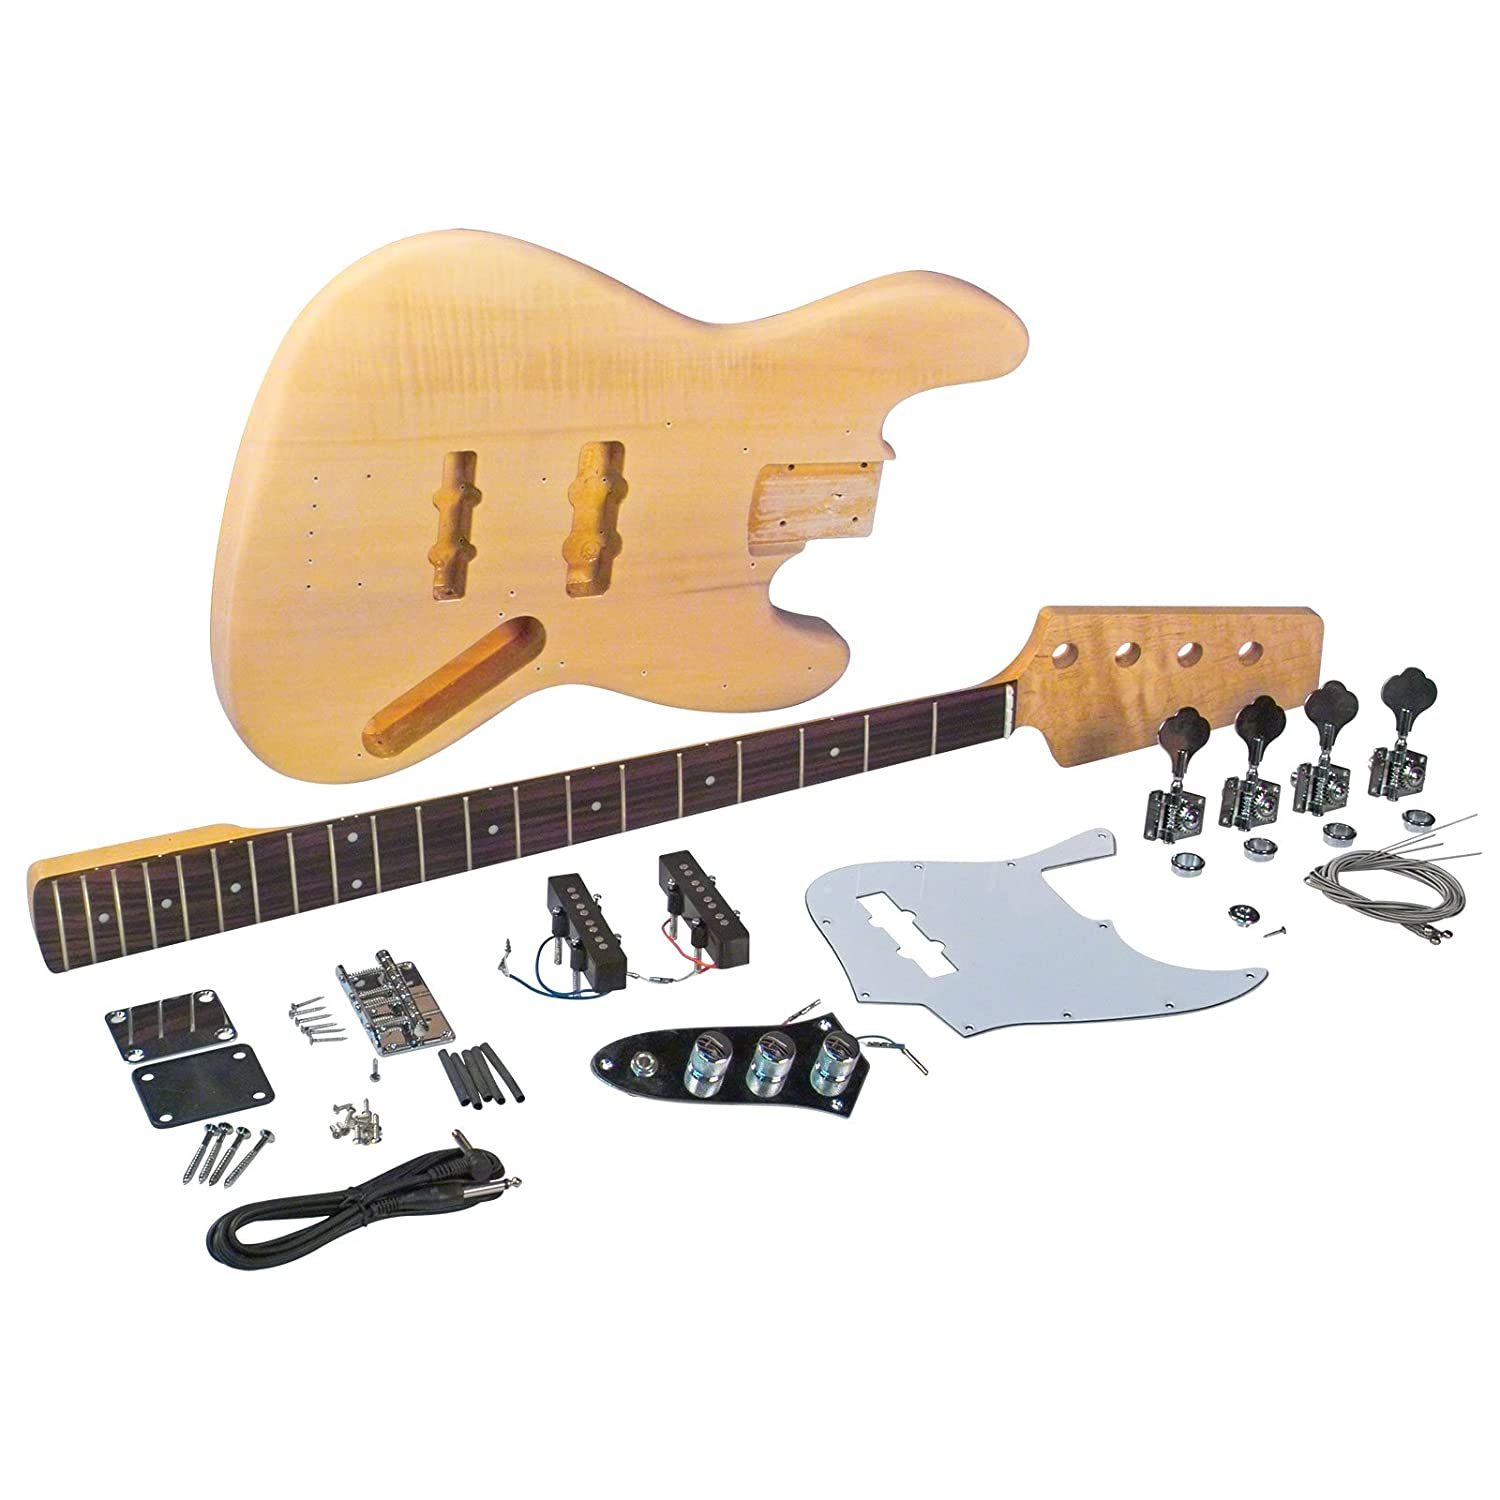 Saga jb 10 electric bass kit j style amazon musical saga jb 10 electric bass kit j style amazon musical instruments solutioingenieria Image collections